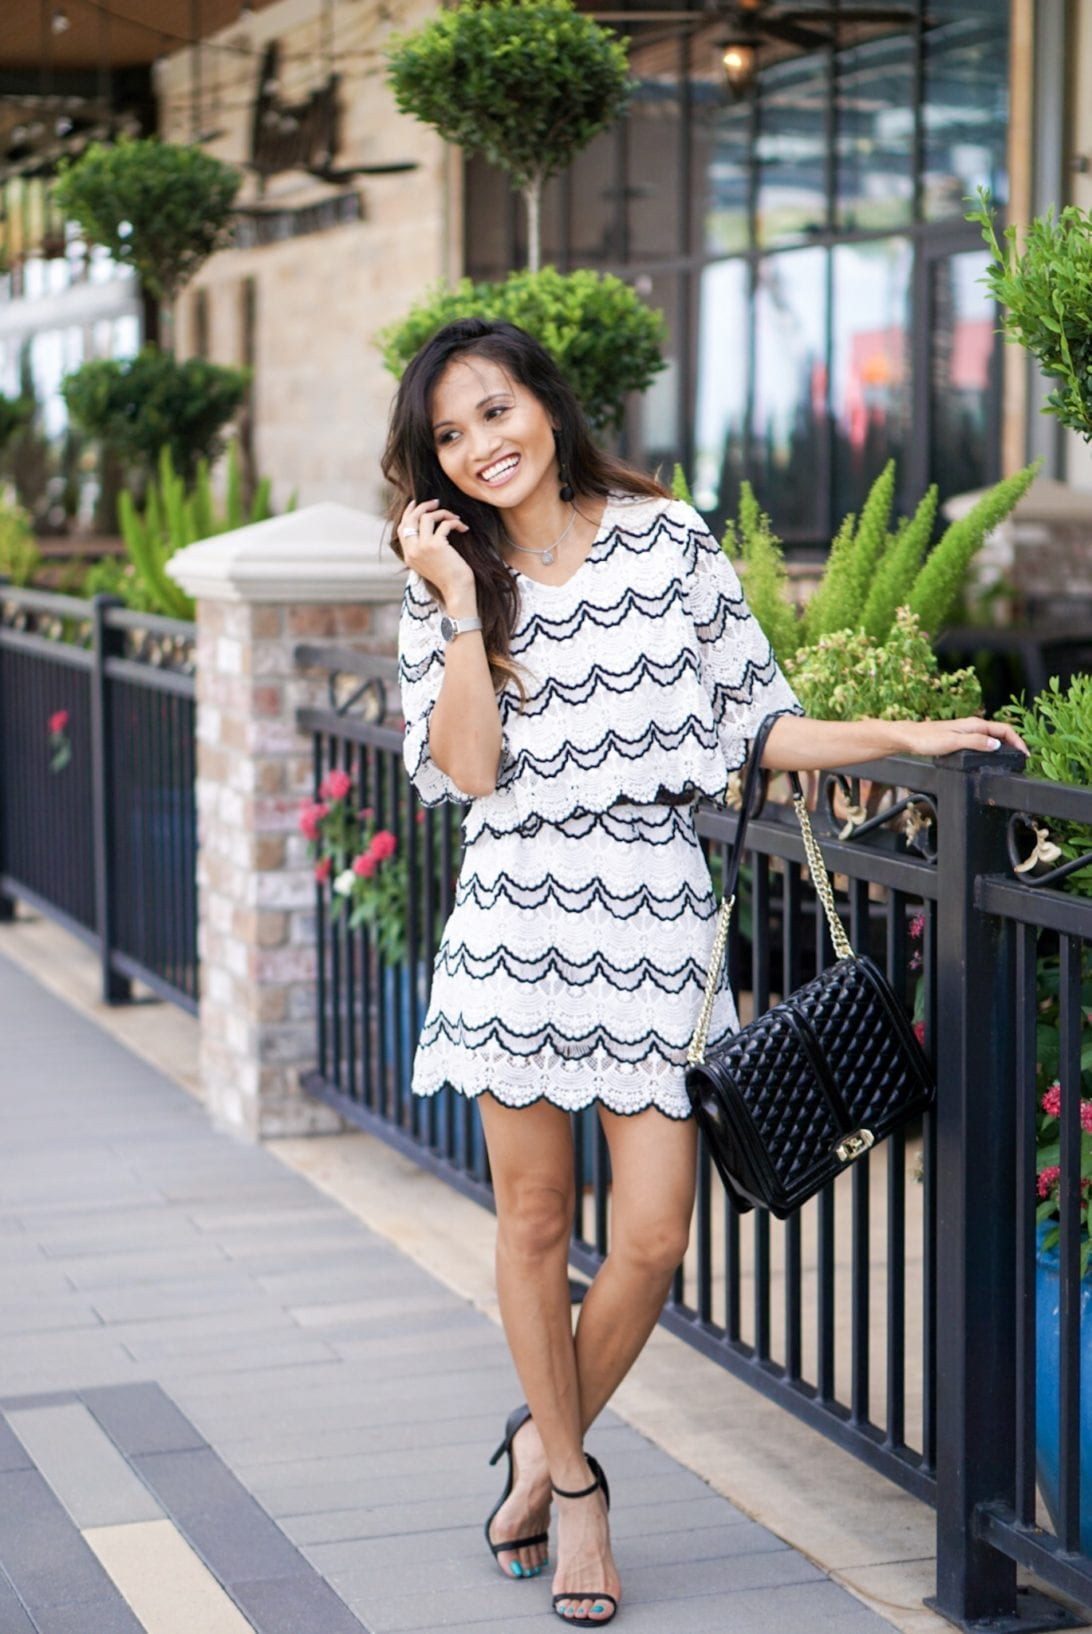 scallop skirt, scallop top, two piece skirt set, chicwish, date night look, Rebecca minkoff bag, date night outfit